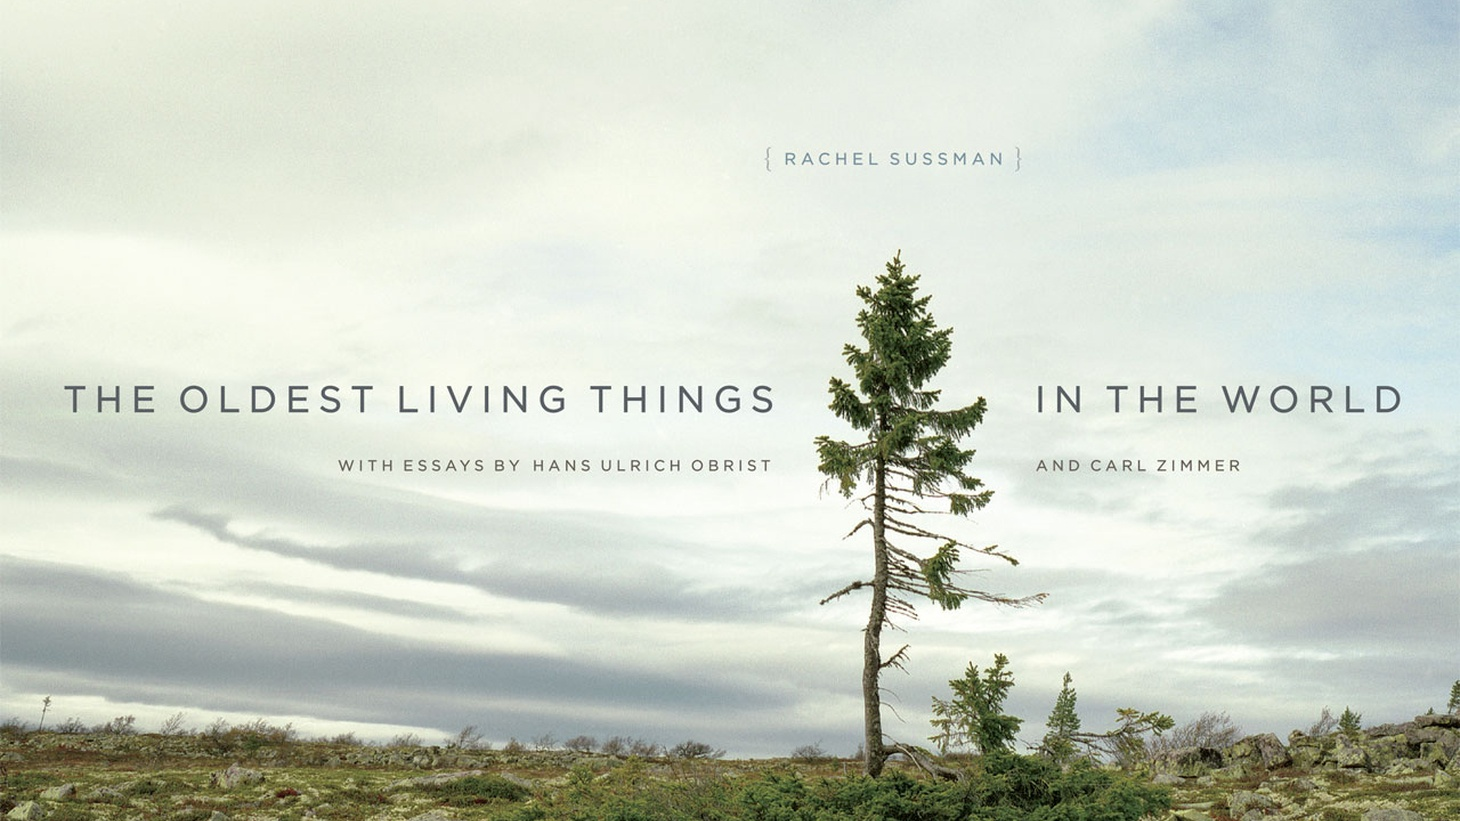 The oldest living thing in the world is a 600,000 year-old bacterium, discovered in the permafrost of Siberia. From that bacteria to California's Giant Sequoias to ancient eucalyptus trees in Australia, Rachel Sussman has spent the better part of the last decade seeking out the oldest living things in the world.